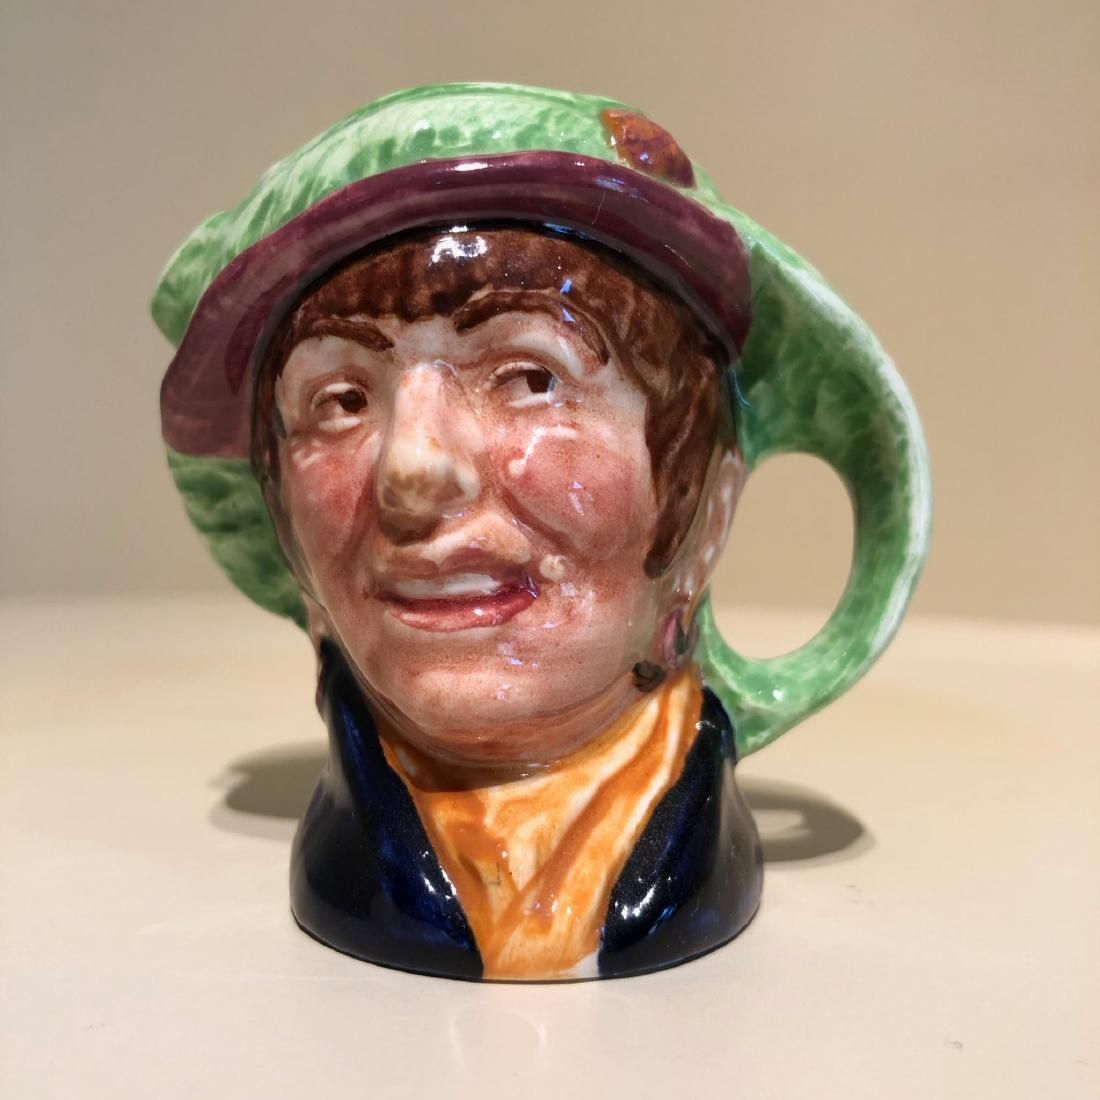 ROYAL DOULTON PEARLY GIRL MINI SIZE JUG WITH GREEN HAT